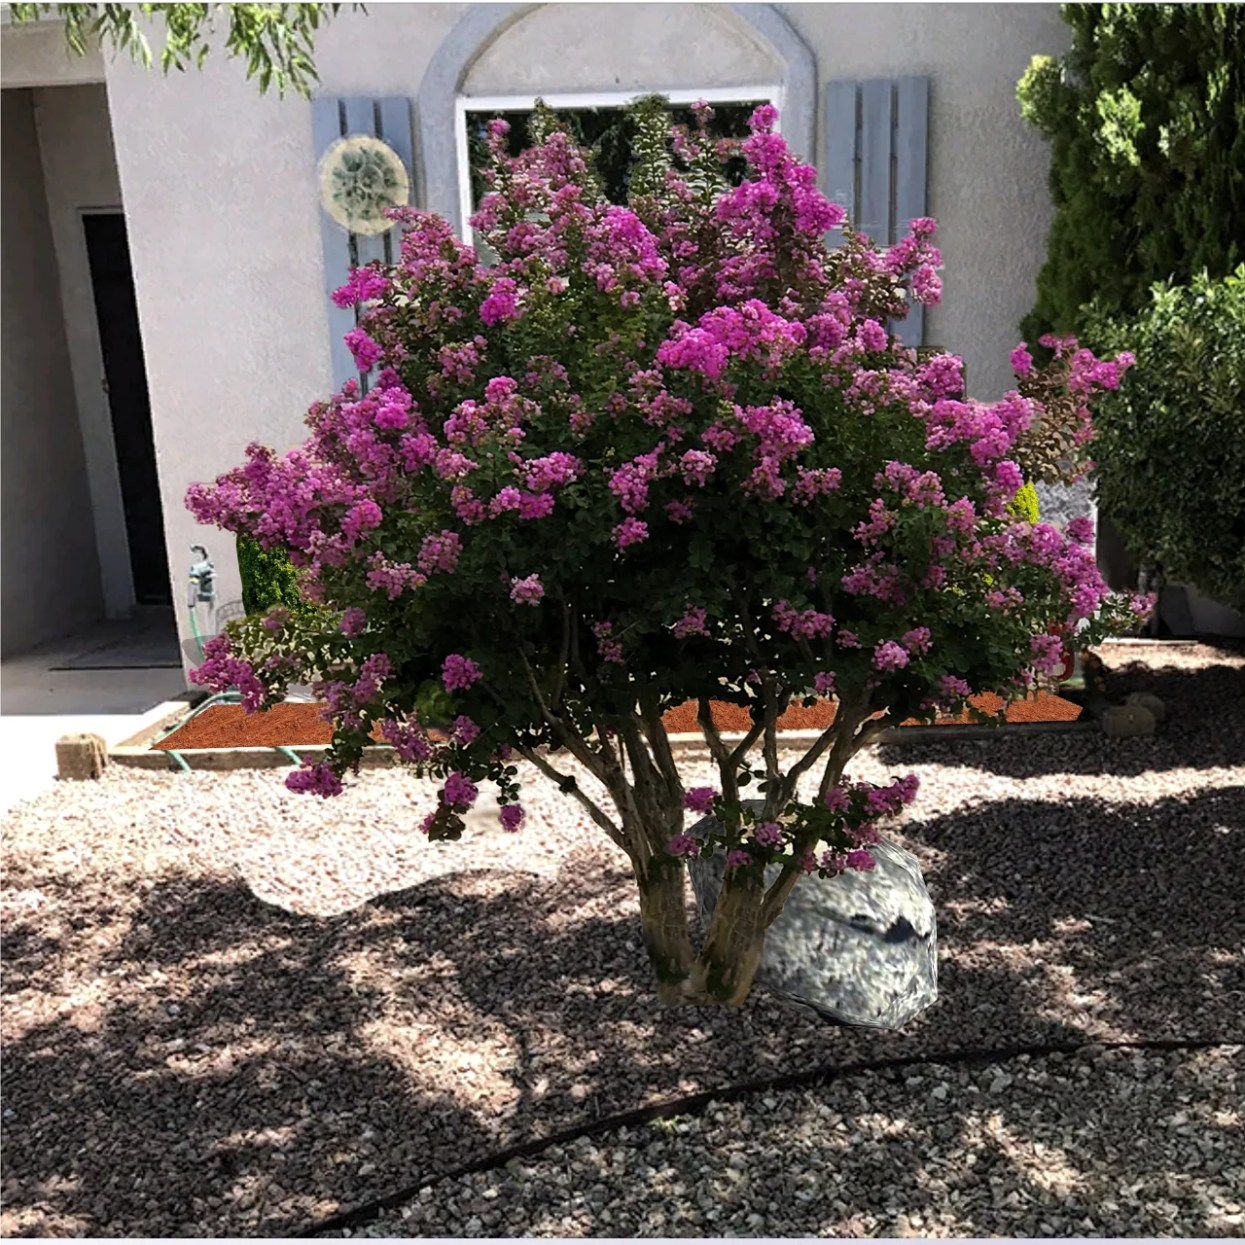 Landscaping with Crape Myrtles